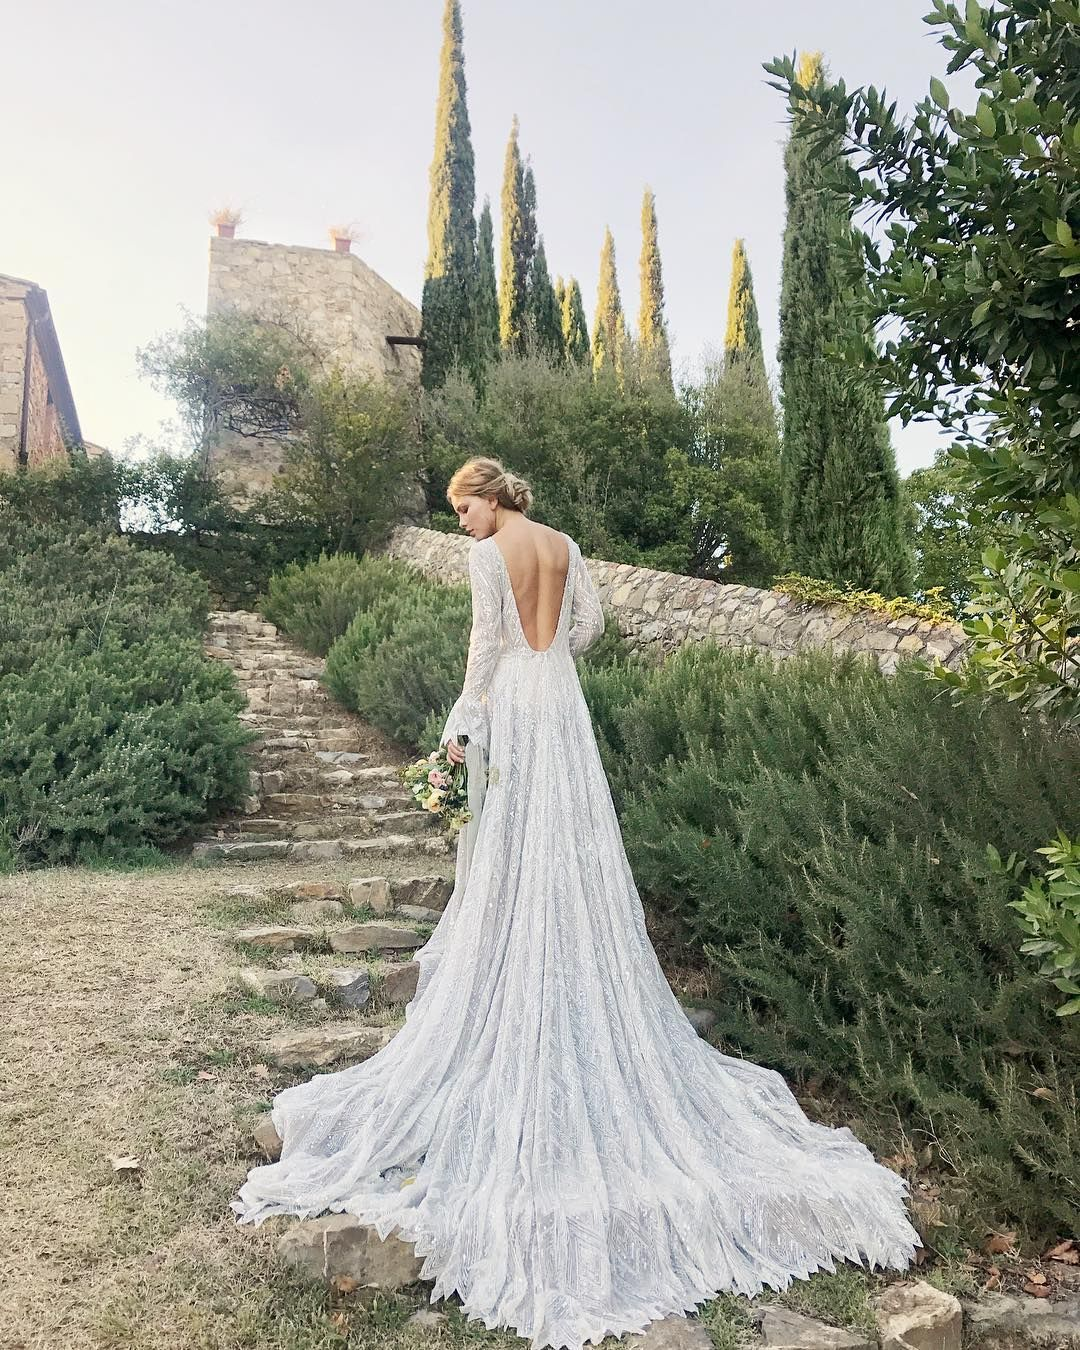 Real Weddings In Tuscany: How Gorgeous Is This Bridal Shot ?! 😍